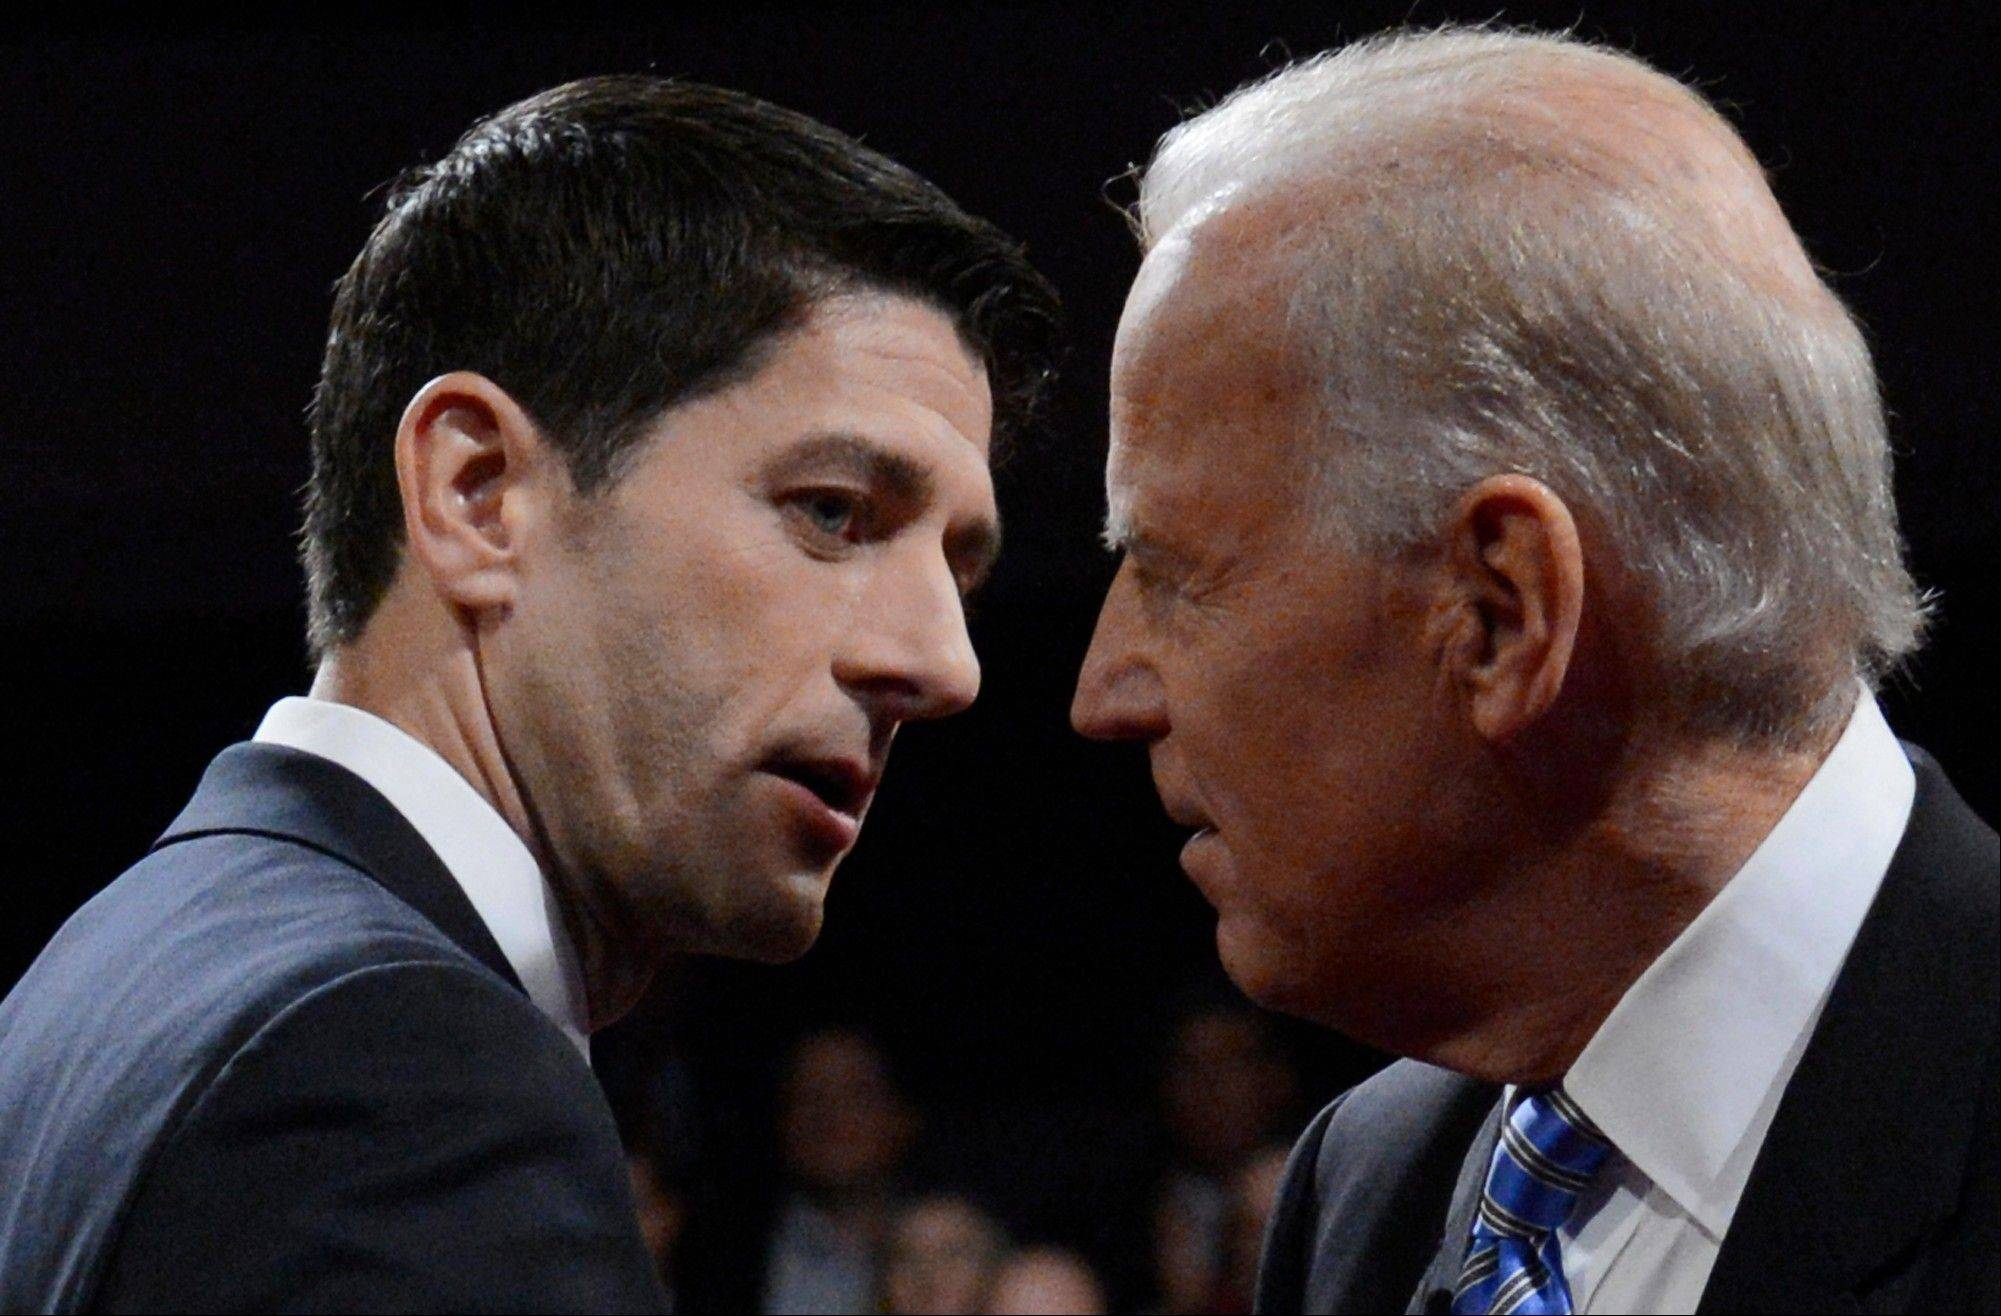 Vice President Joe Biden and Republican vice presidential nominee Rep. Paul Ryan of Wisconsin shake hands after the vice presidential debate at Centre College.